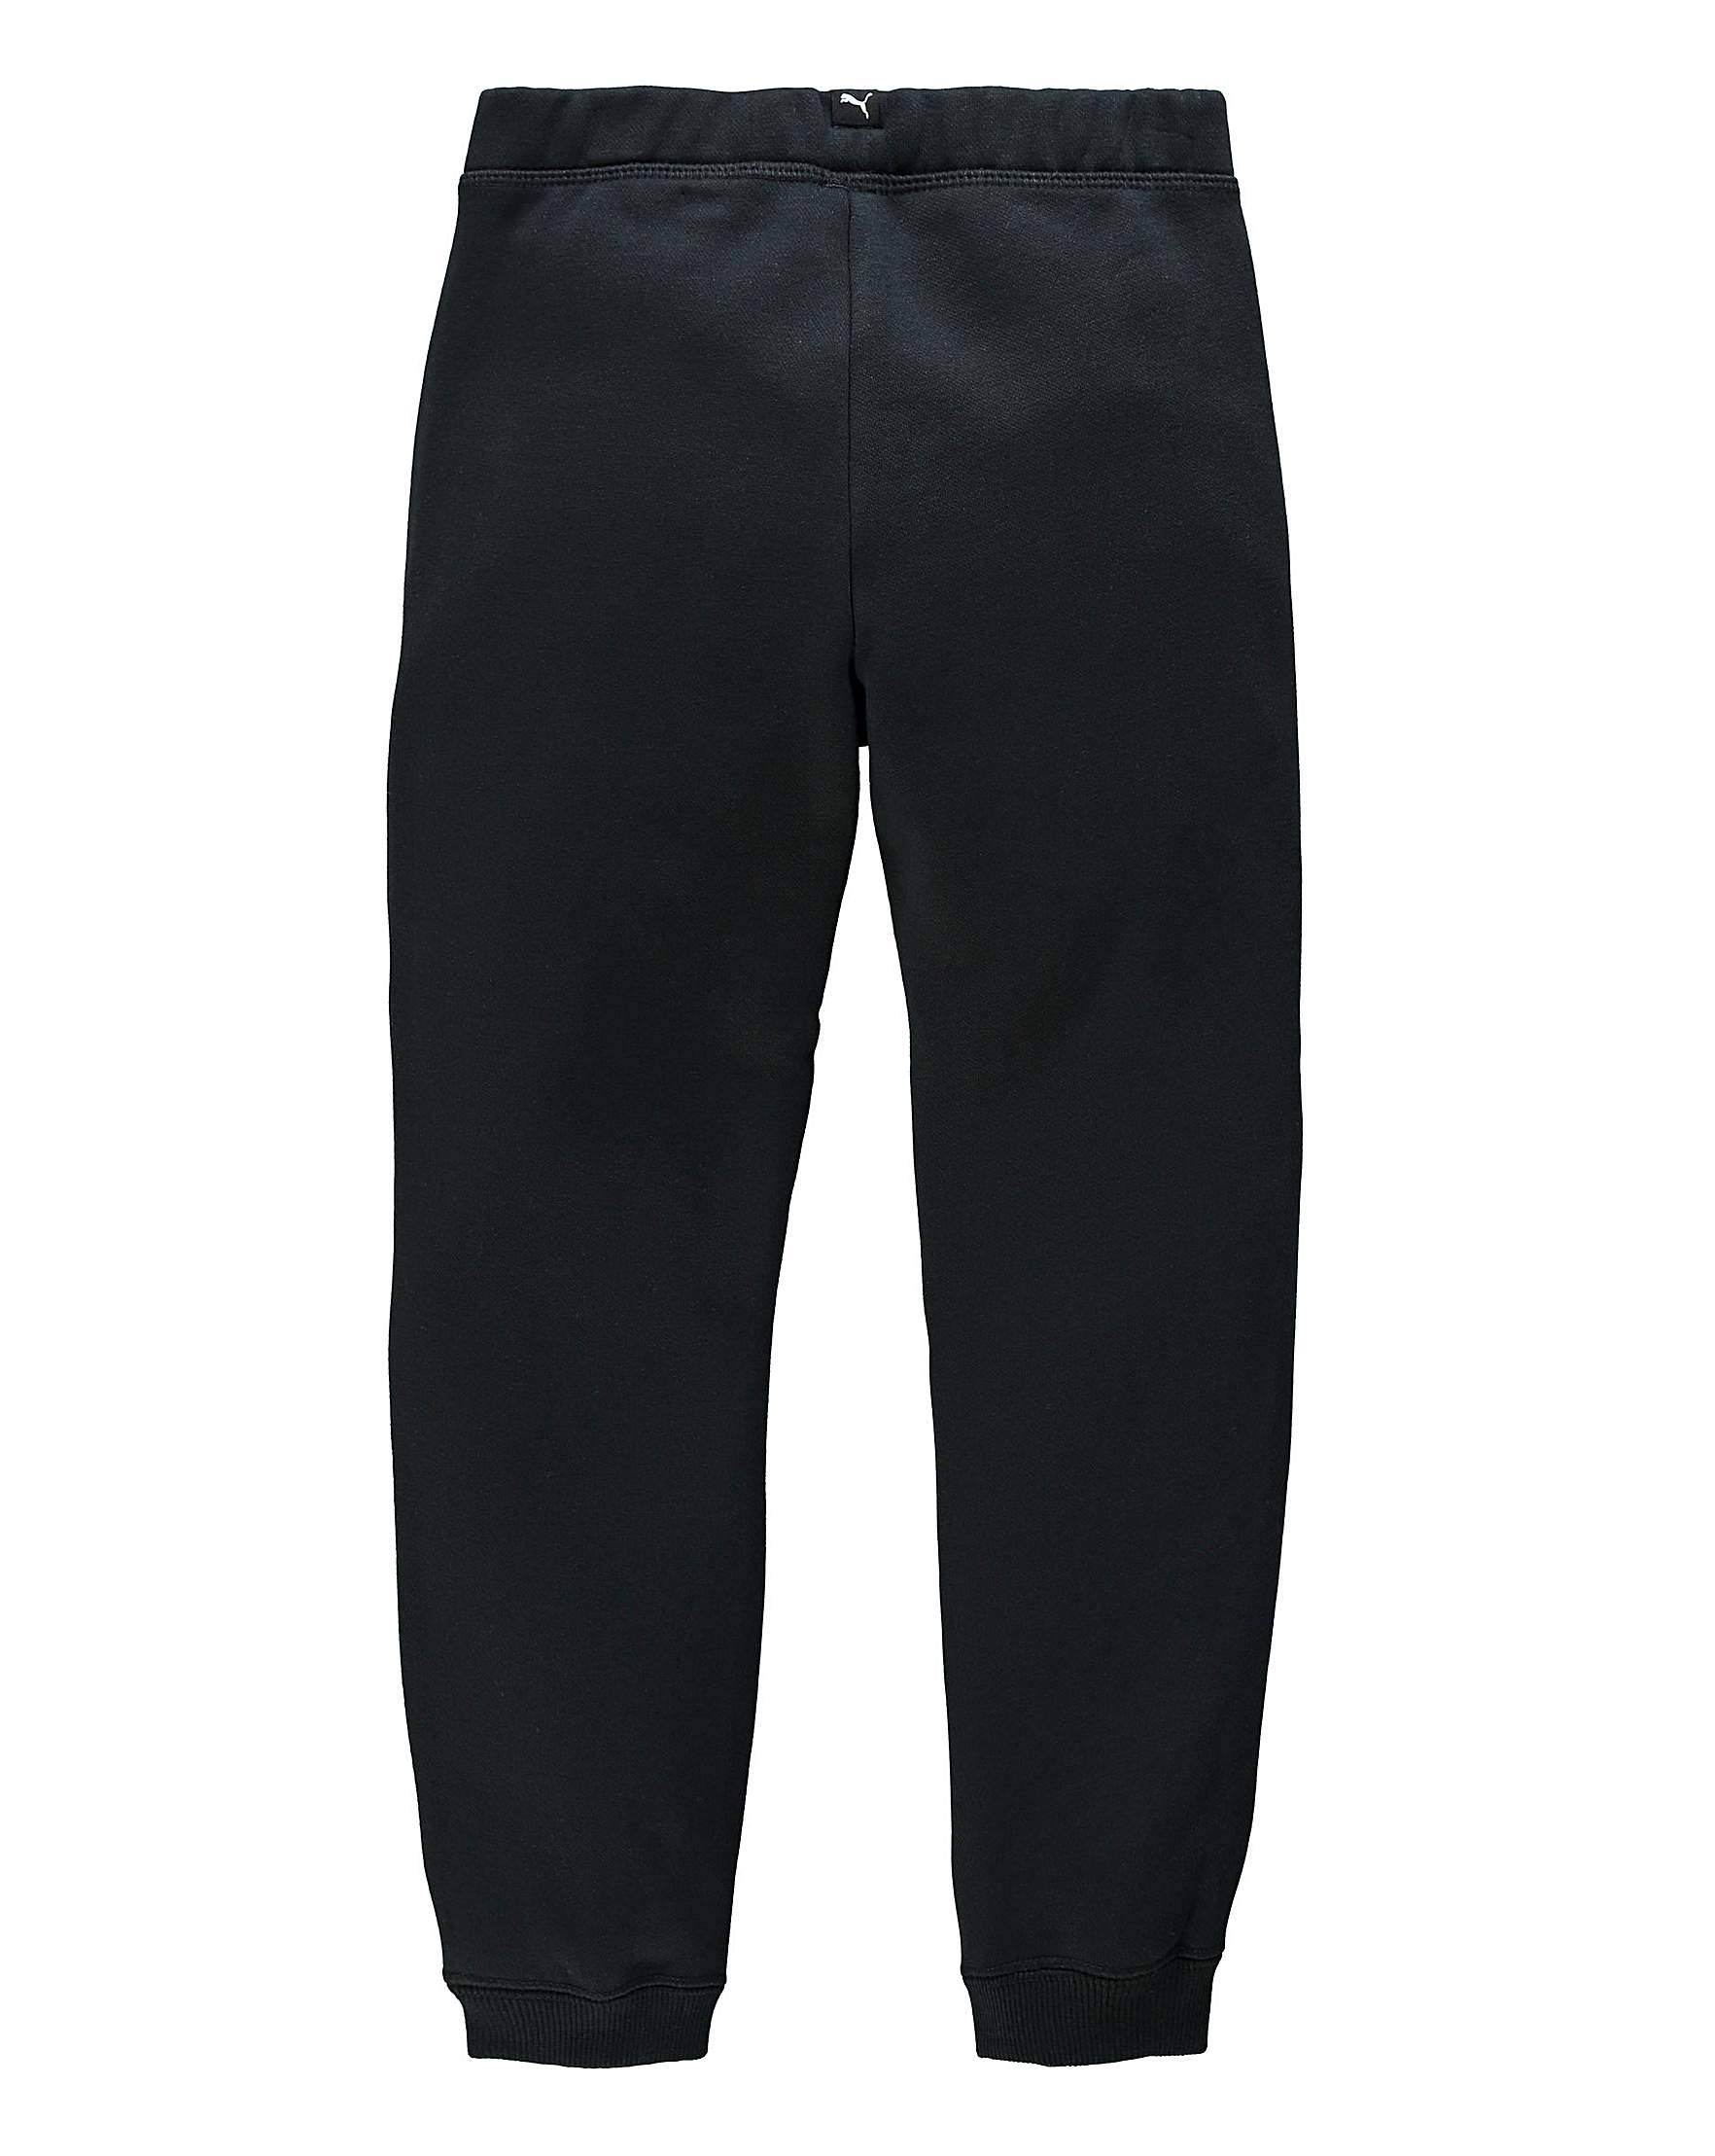 1daddcea6fe5 Puma Essential Sweat Pants